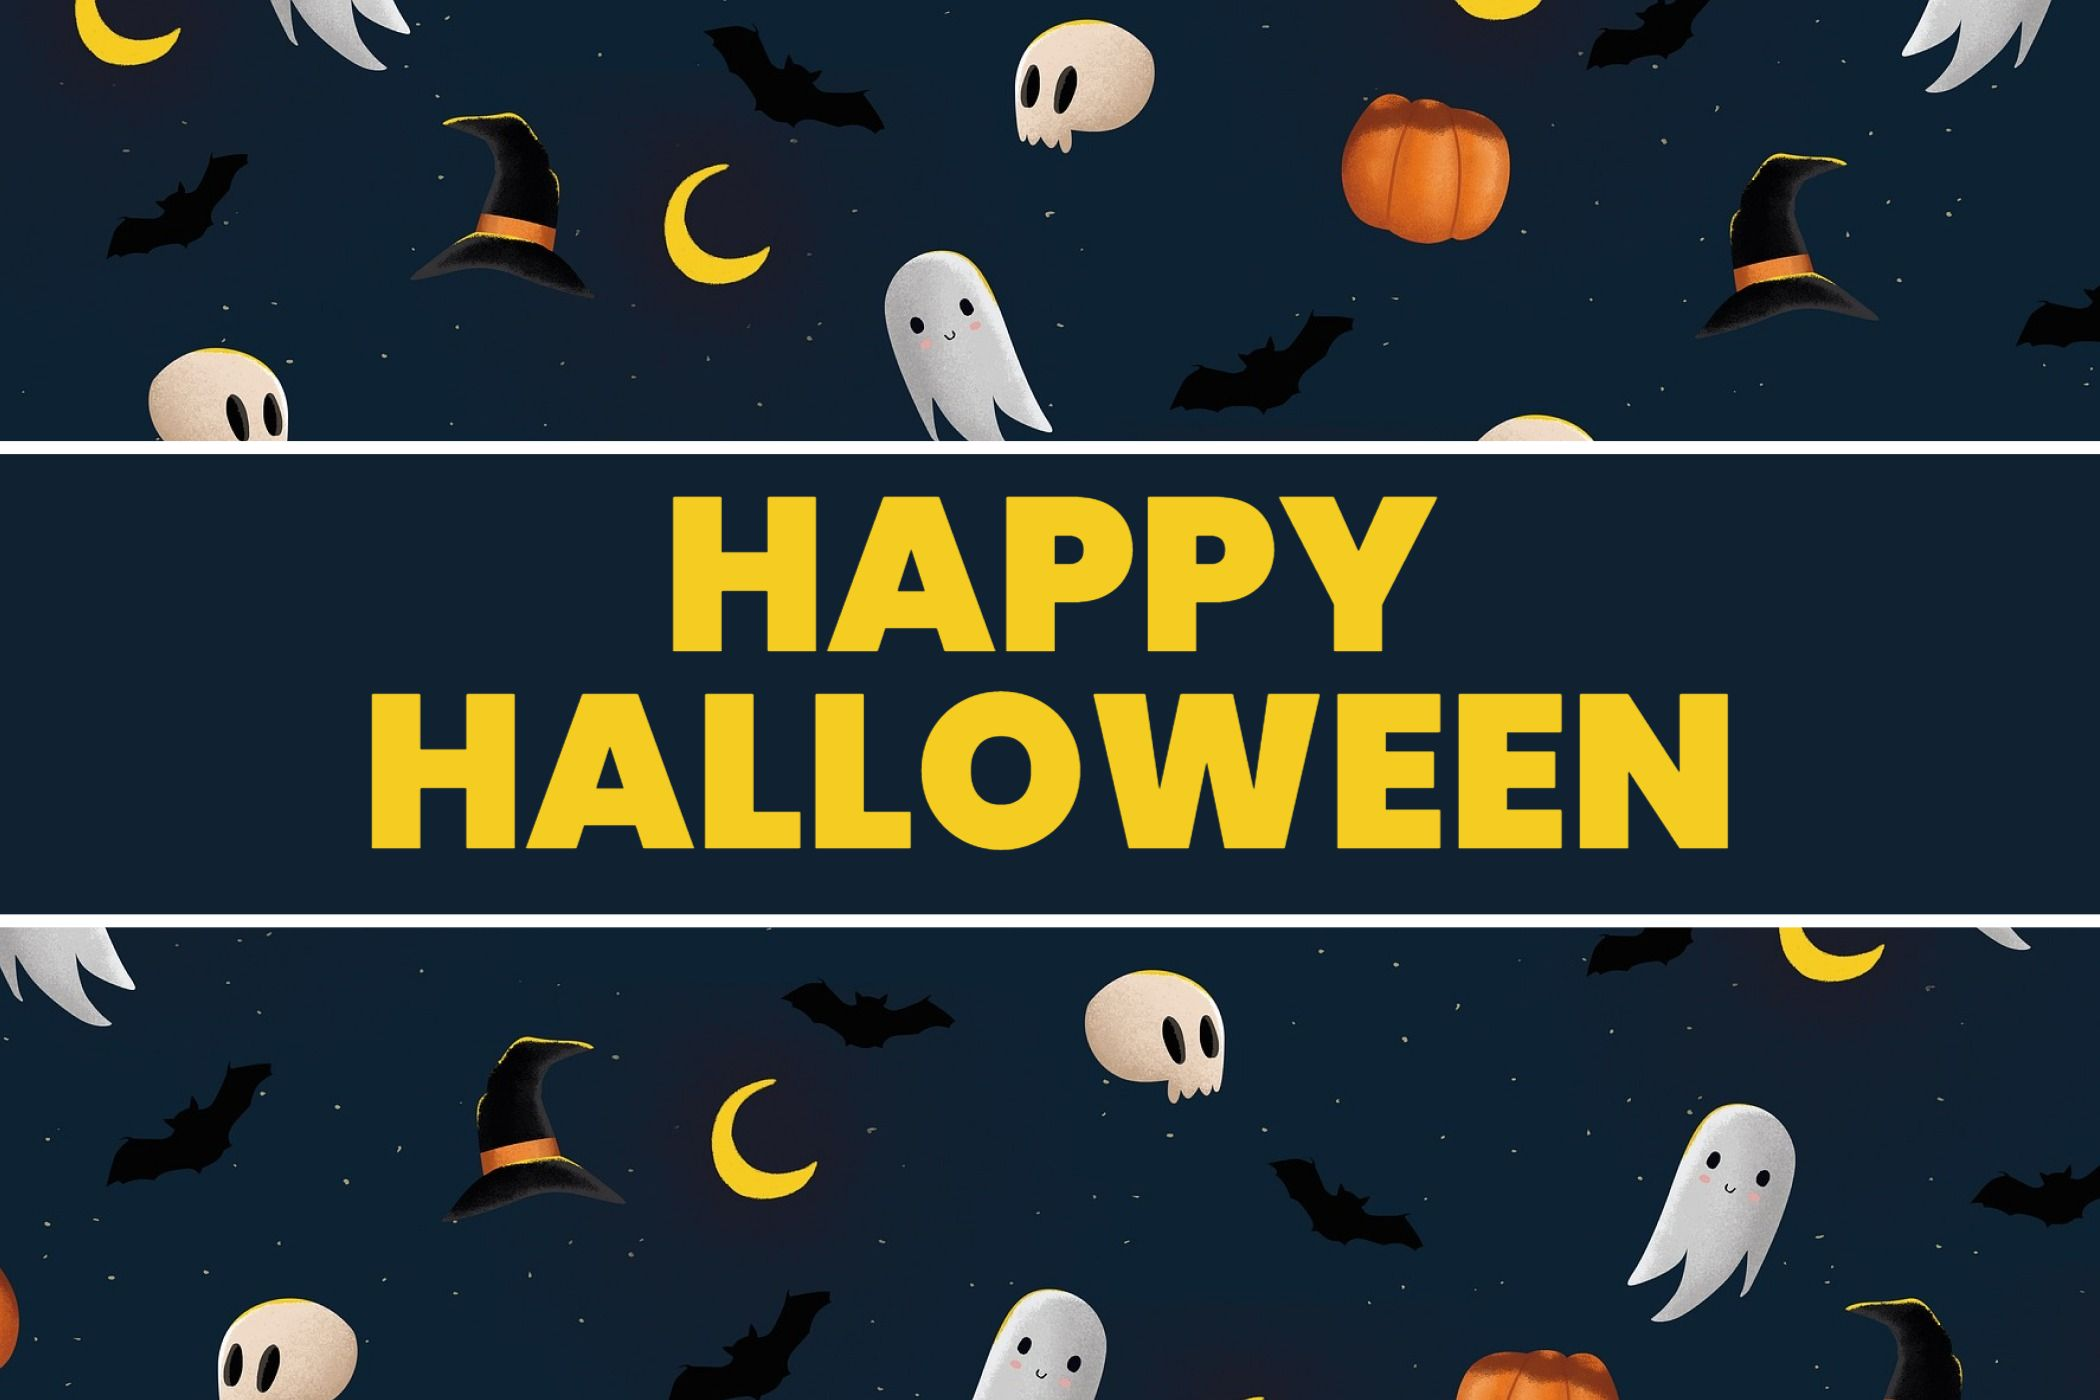 Greeting Card with Ghosts Halloween Template